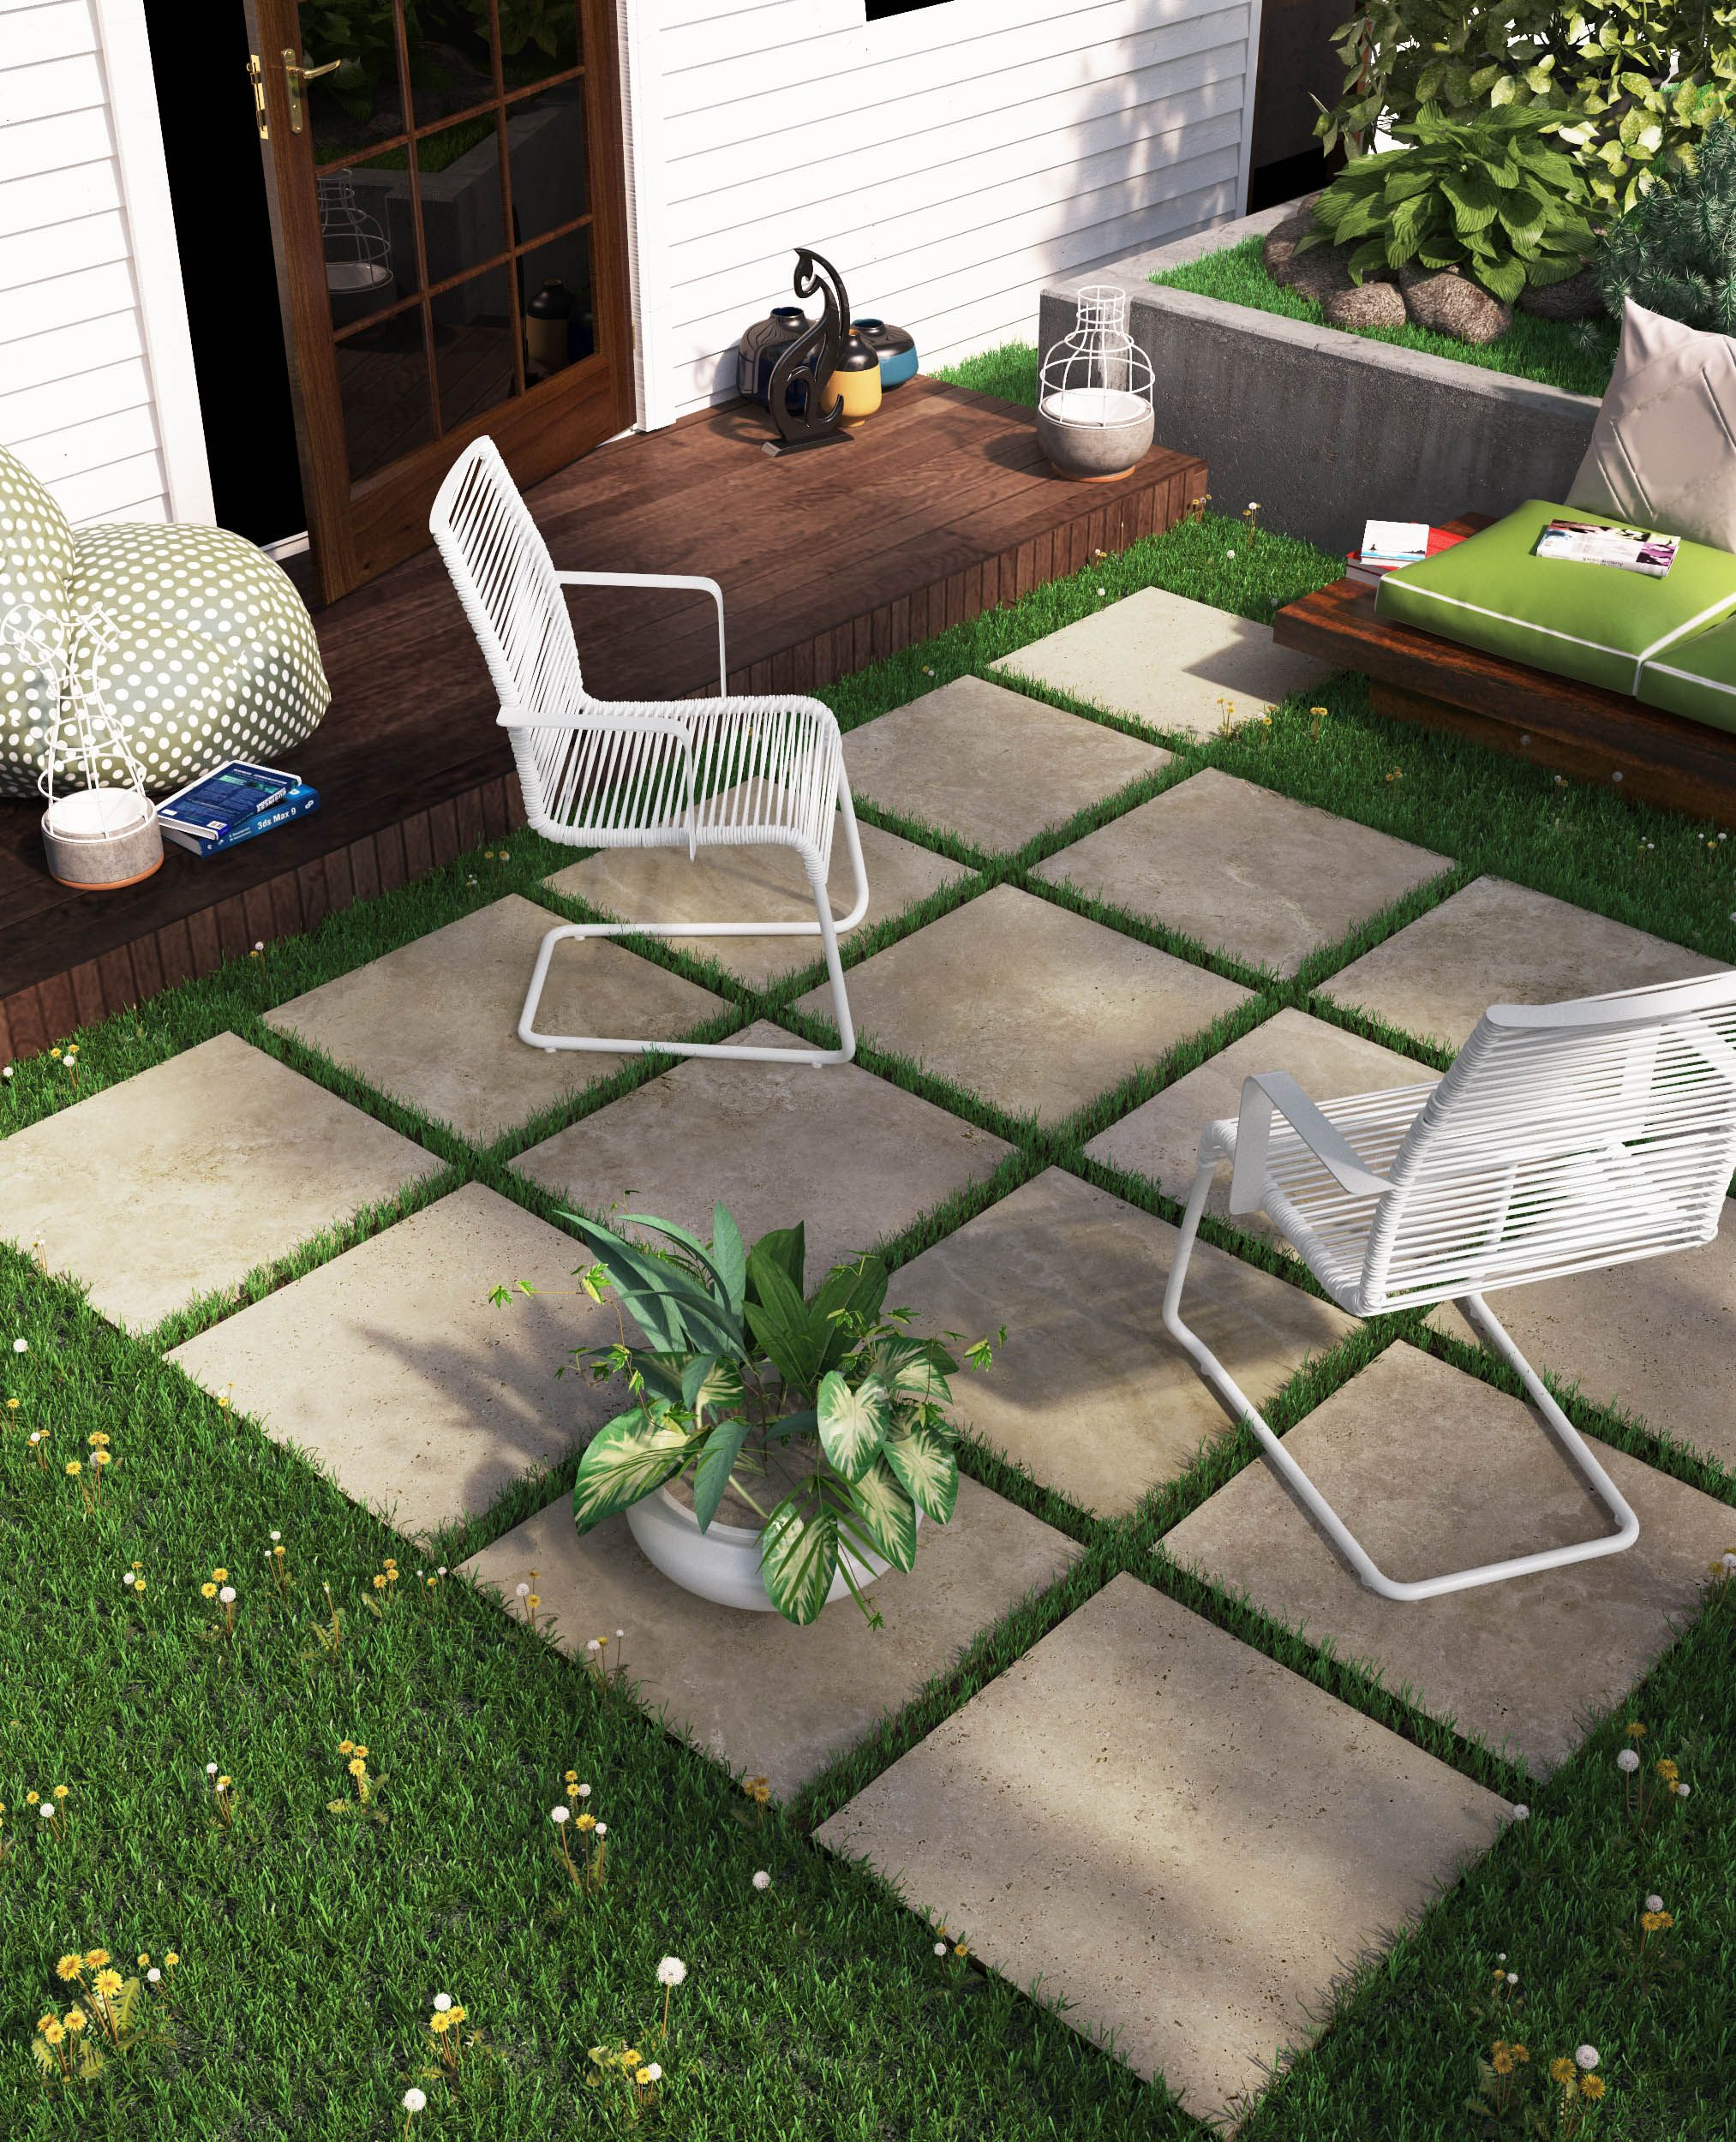 Superieur Outdoor Patio, Sitting Area With Porcelain Patio Stones That Look Like  Travertine But Do Not Require Sealing!